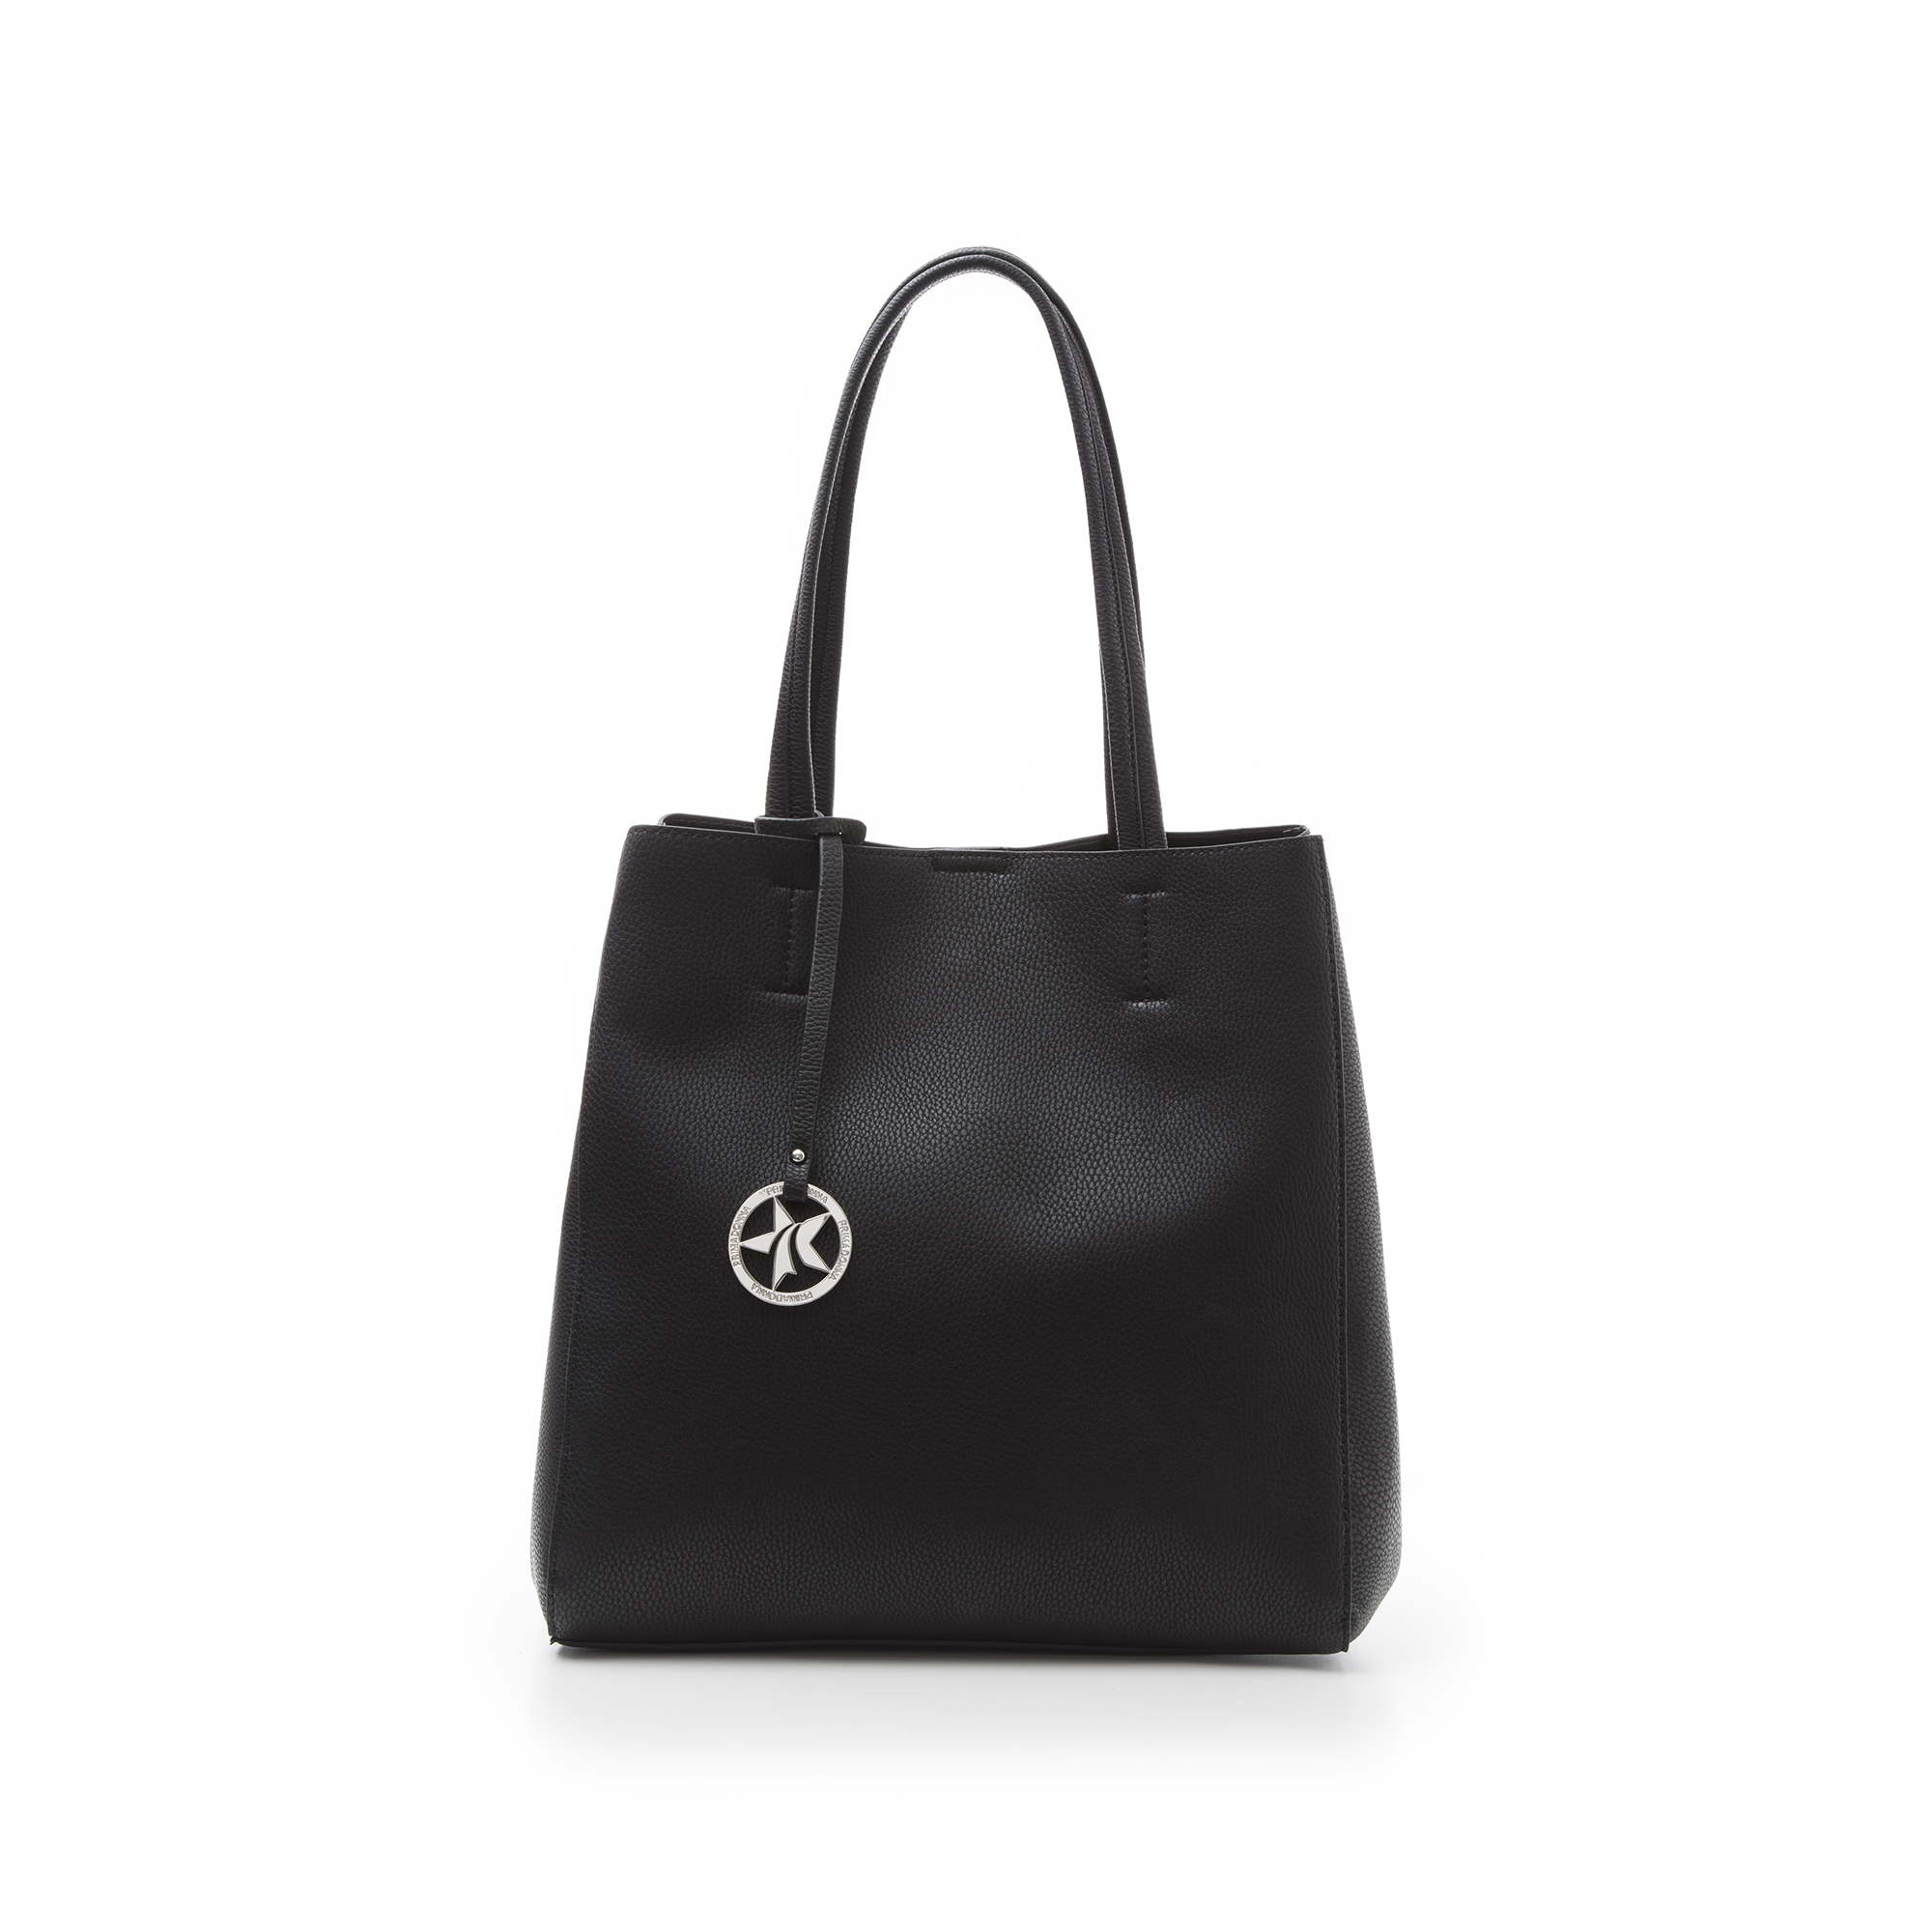 Maxi-bag nera in eco-pelle